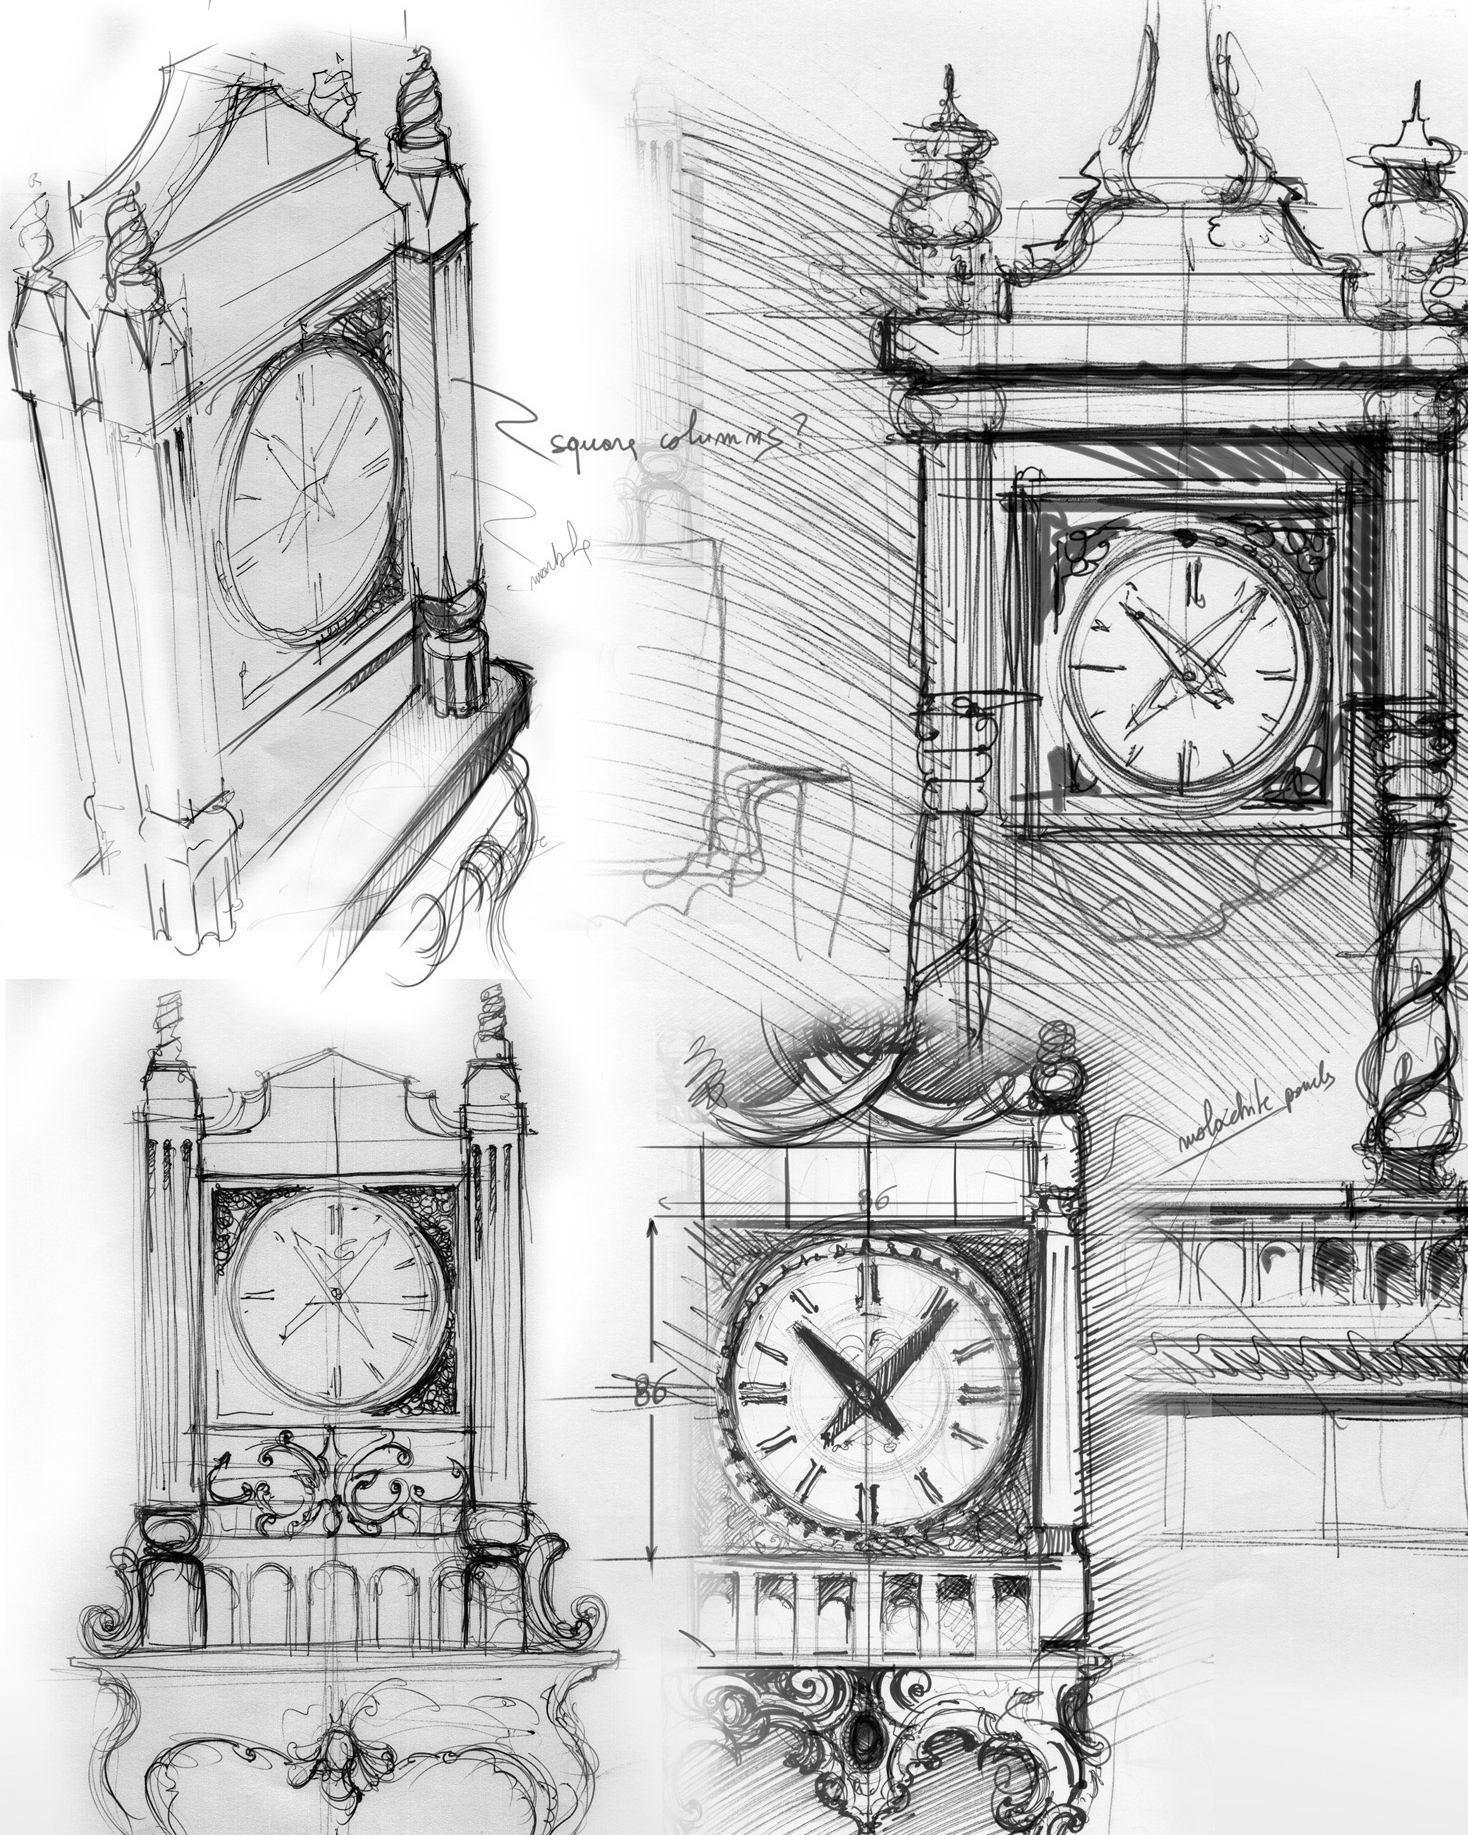 SKETCHES OF THE PALATIAN SCALE CLOCKS